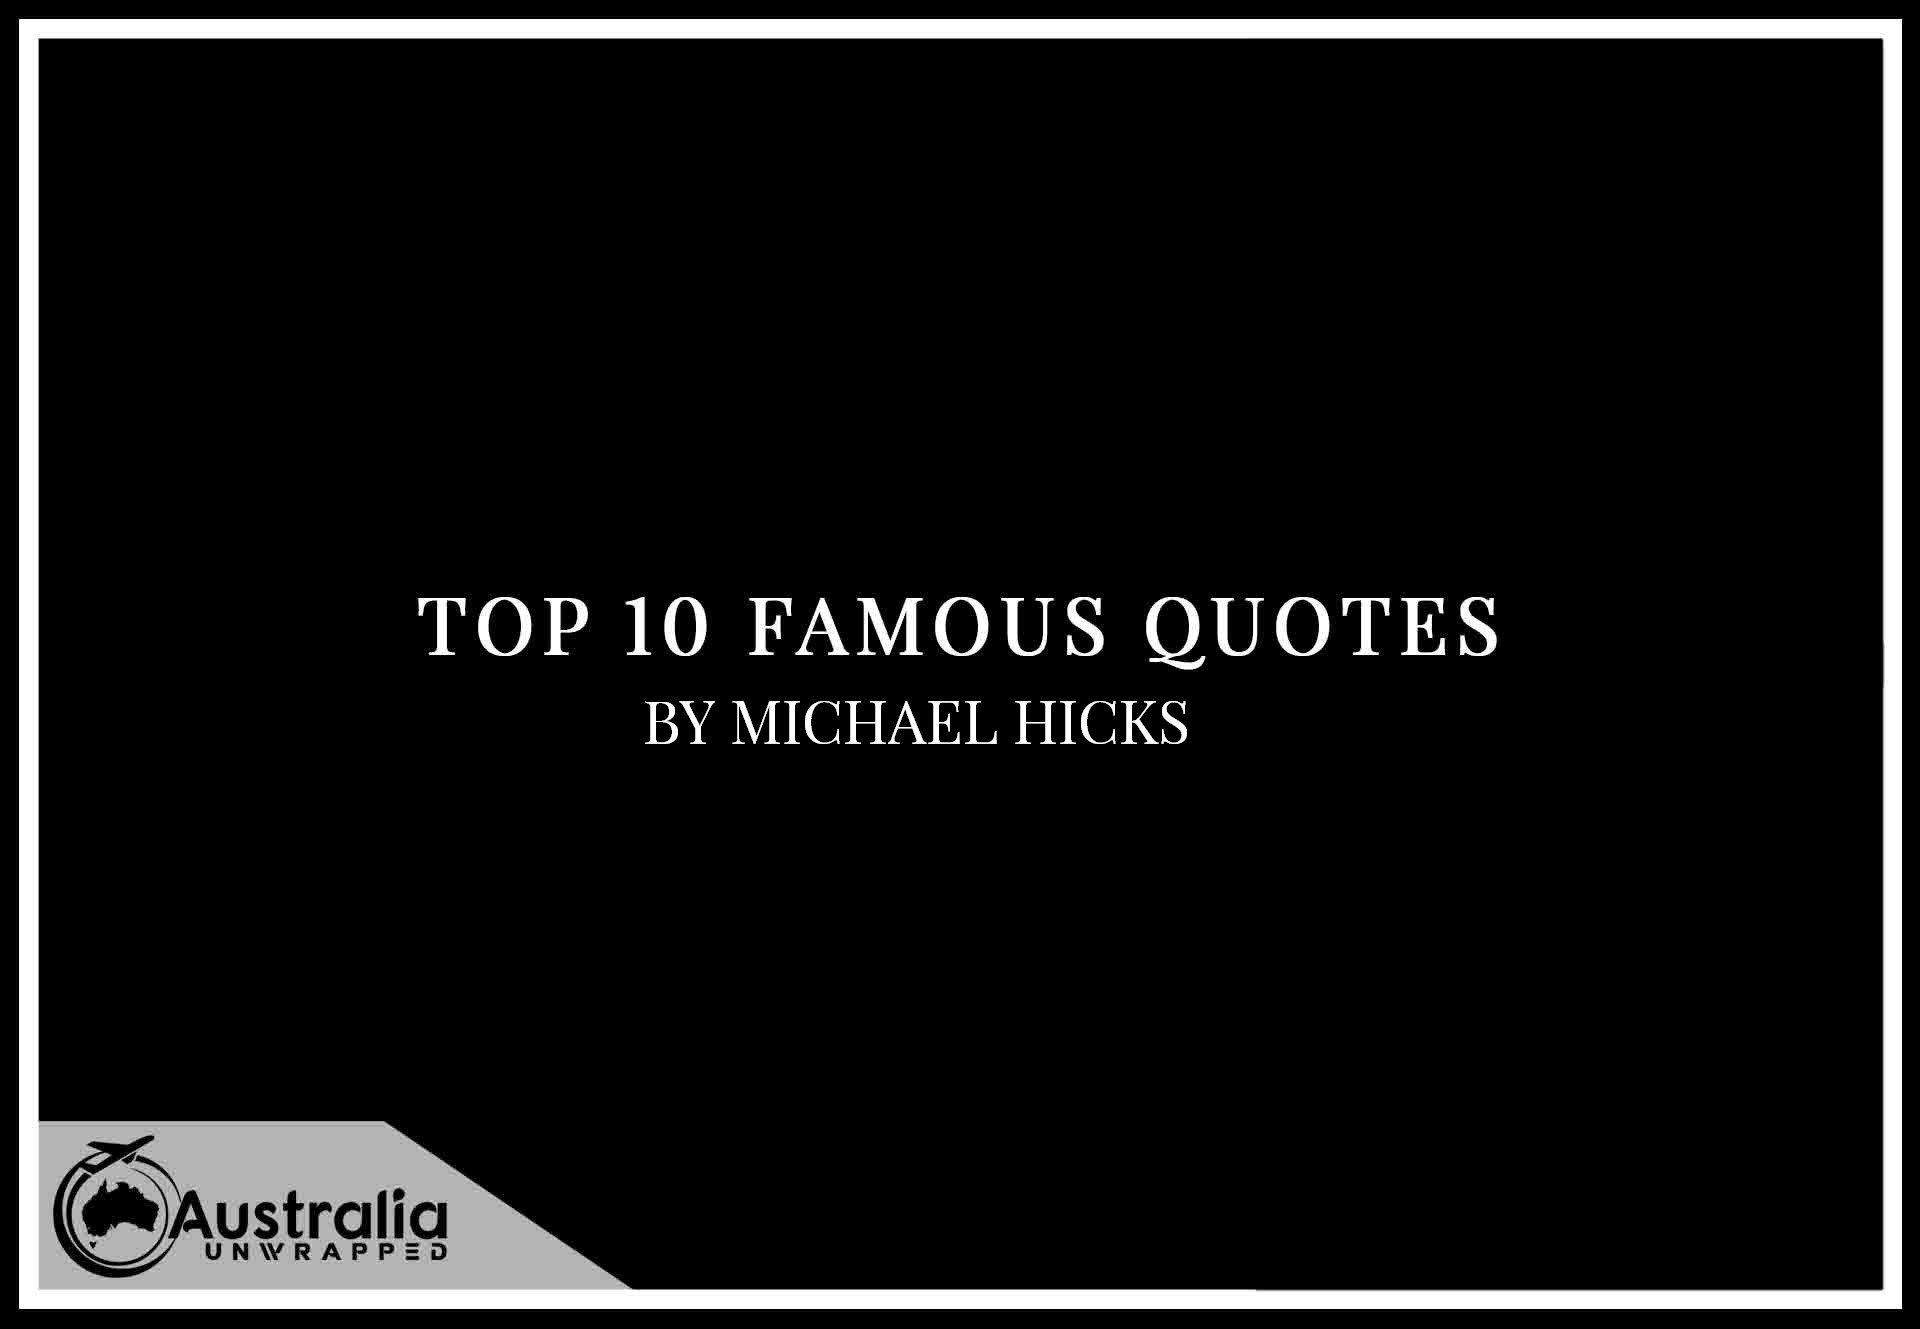 Top 10 Famous Quotes by Author Michael R. Hicks